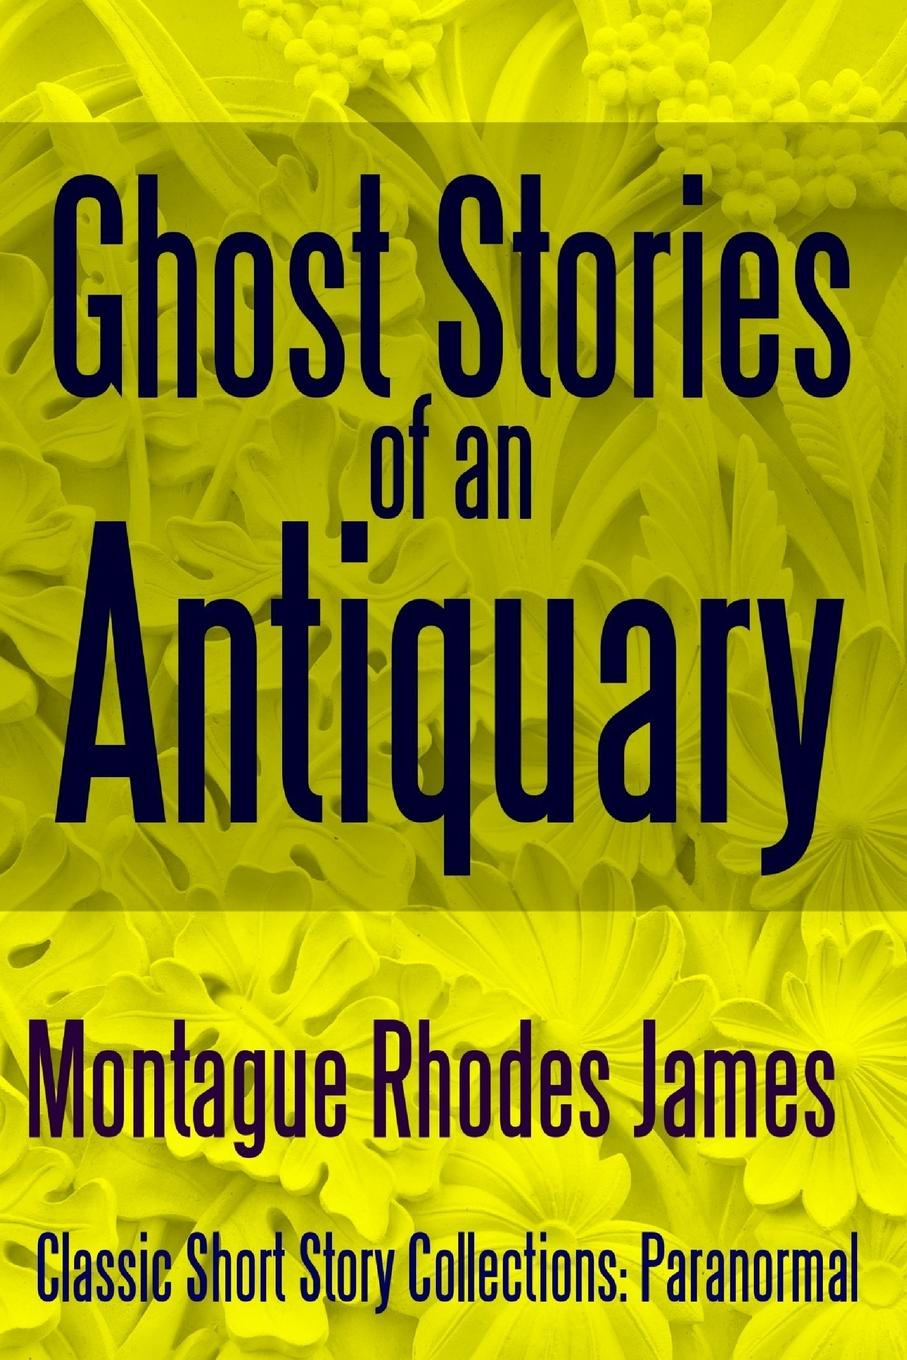 лучшая цена Montague Rhodes James Ghost Stories of an Antiquary